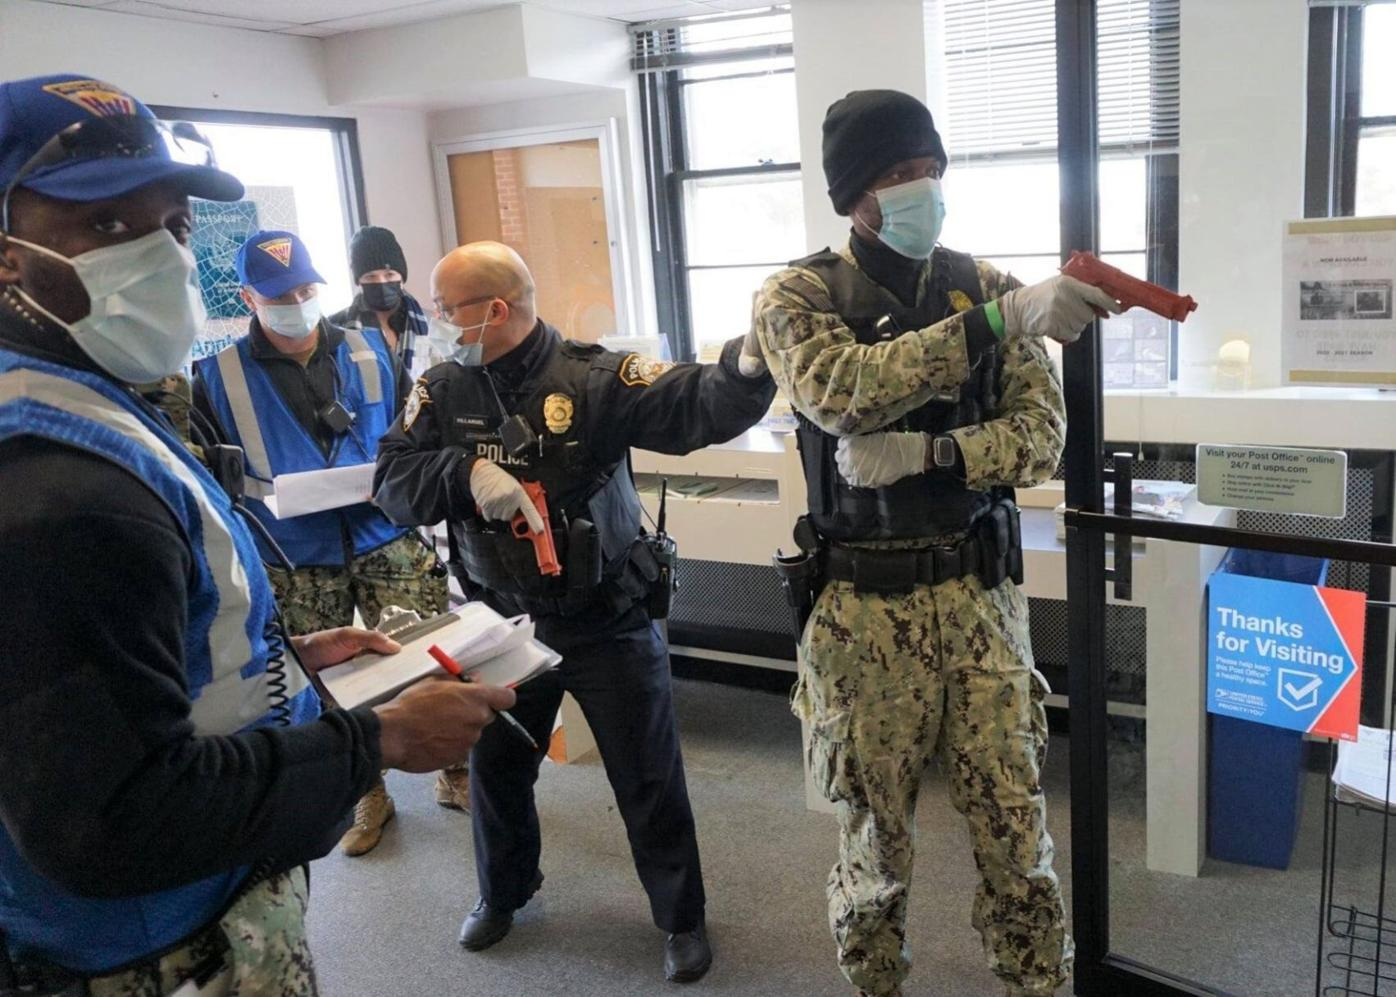 Mock hostage situation during Citadel Shield-Solid Curtain exercise